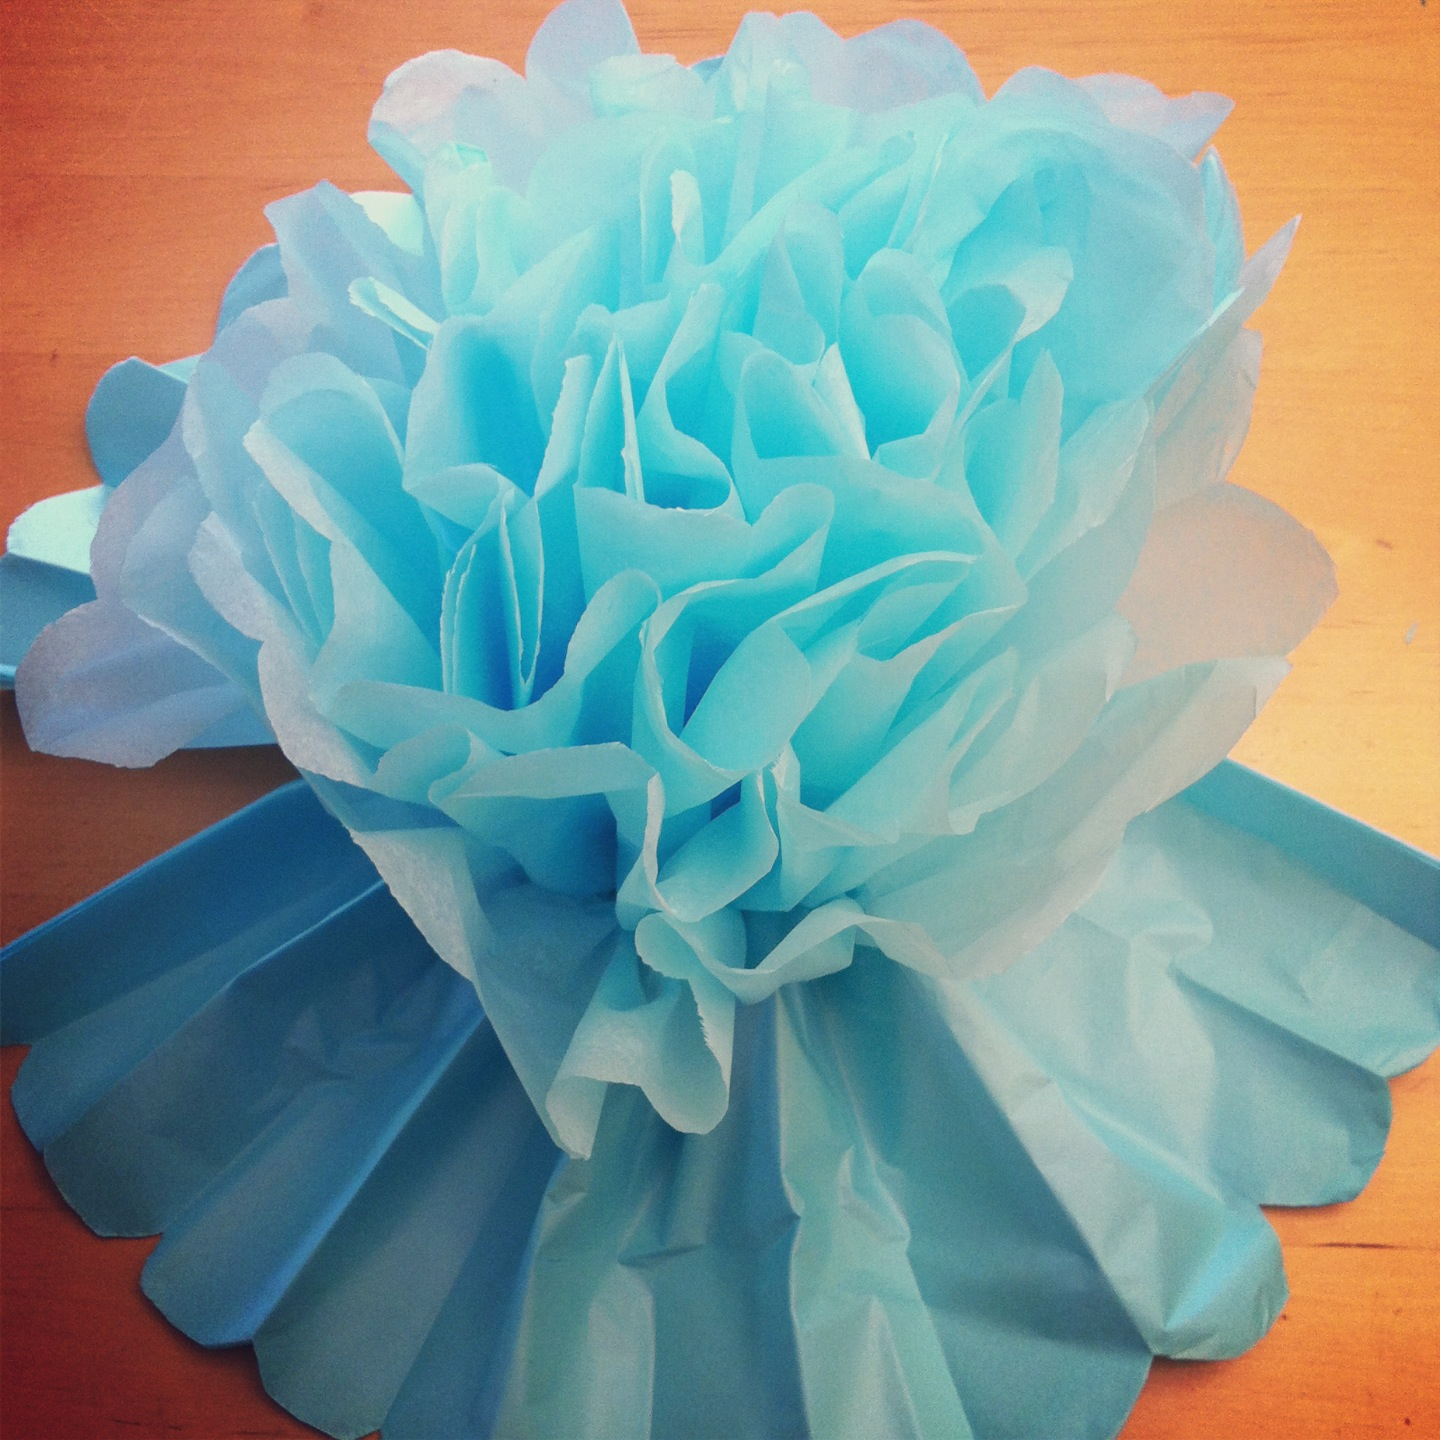 DIY Giant Tissue Paper Flowers Tutorial 2 for $1.00 Make Beautiful Birthday Party Decorations Step 8 & Tutorial- How To Make DIY Giant Tissue Paper Flowers - Hello ...